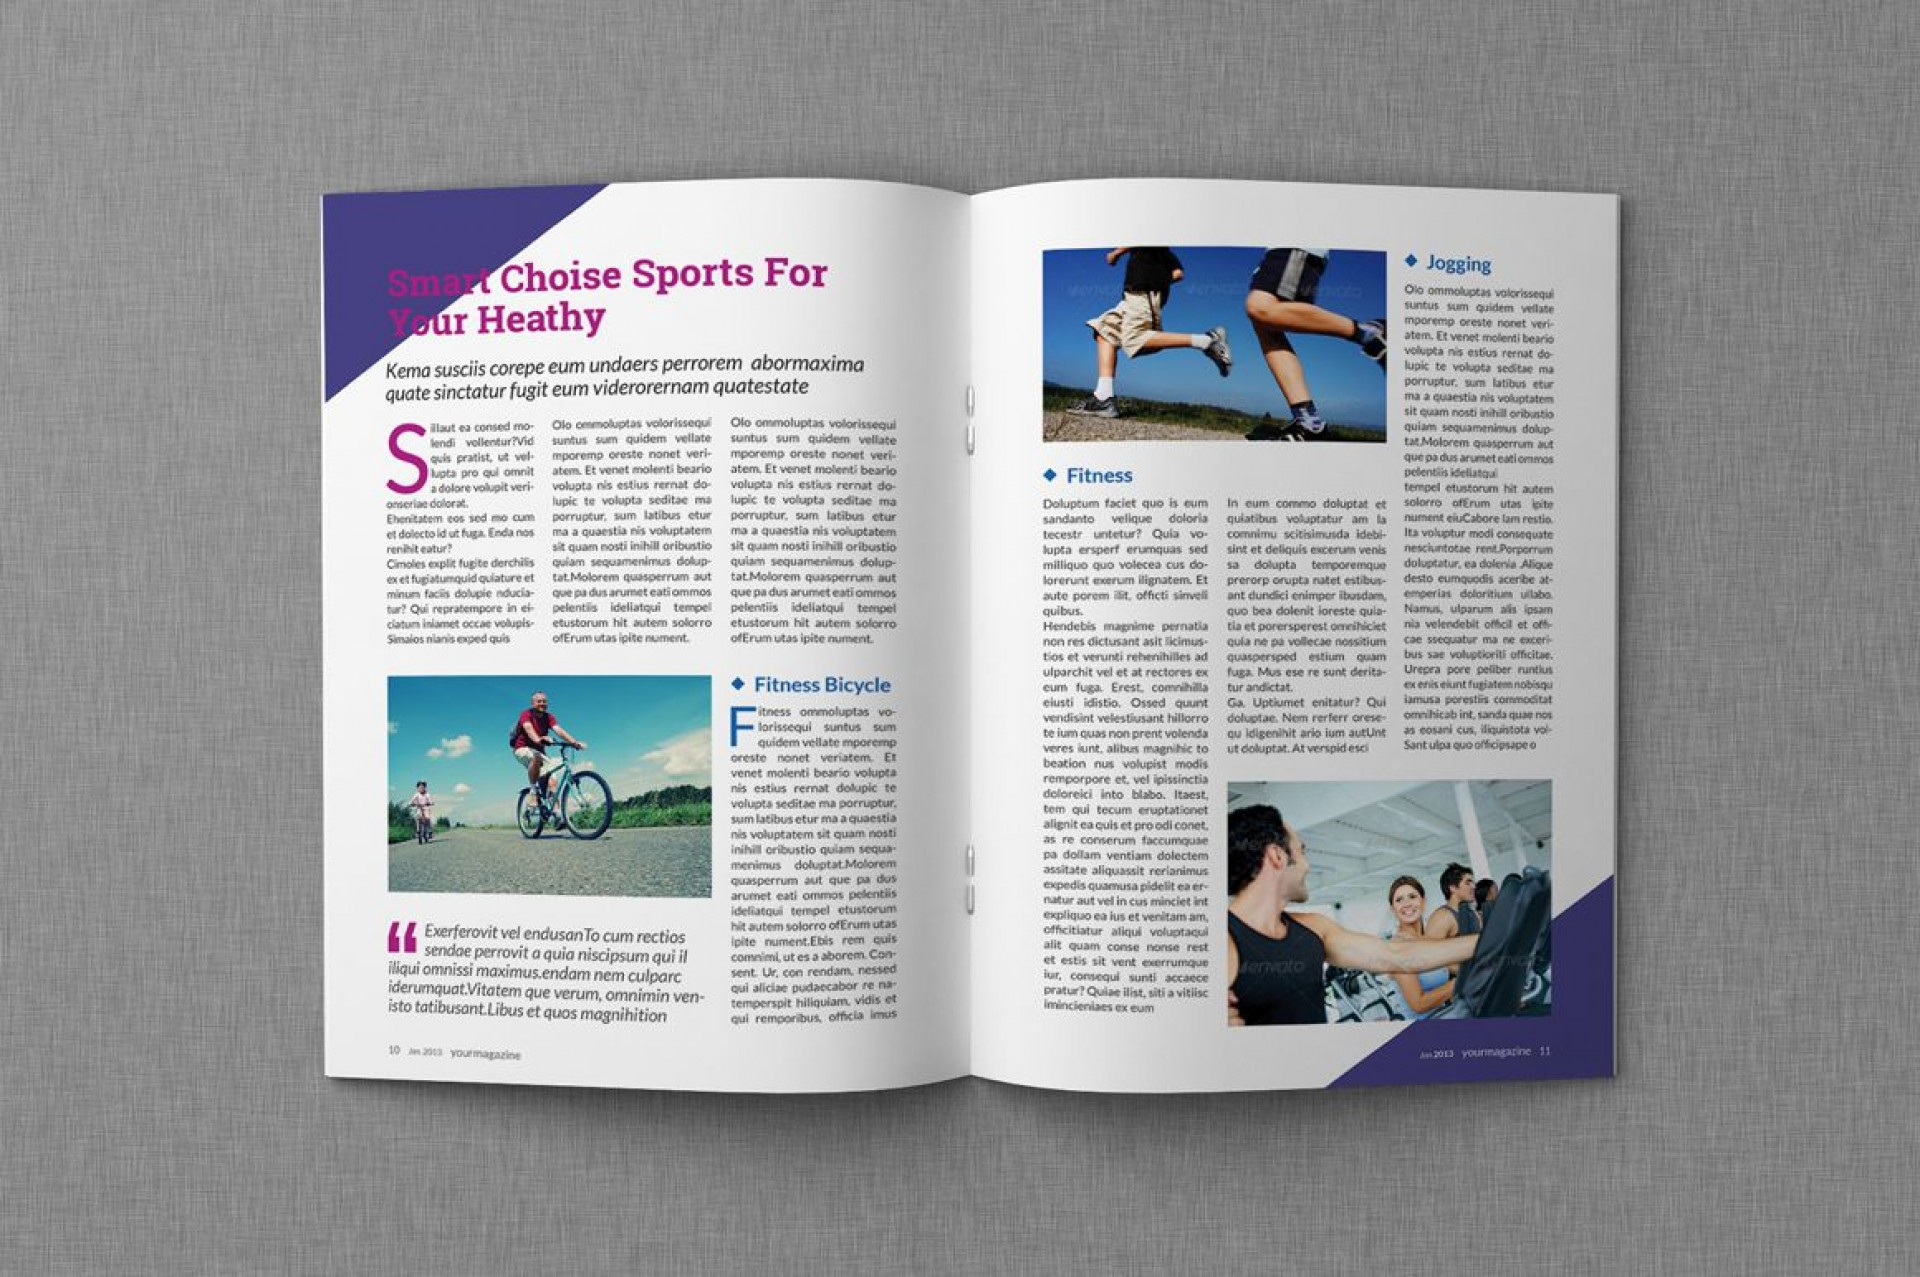 009 Unique Magazine Template For Microsoft Word Image  Layout Design Download1920